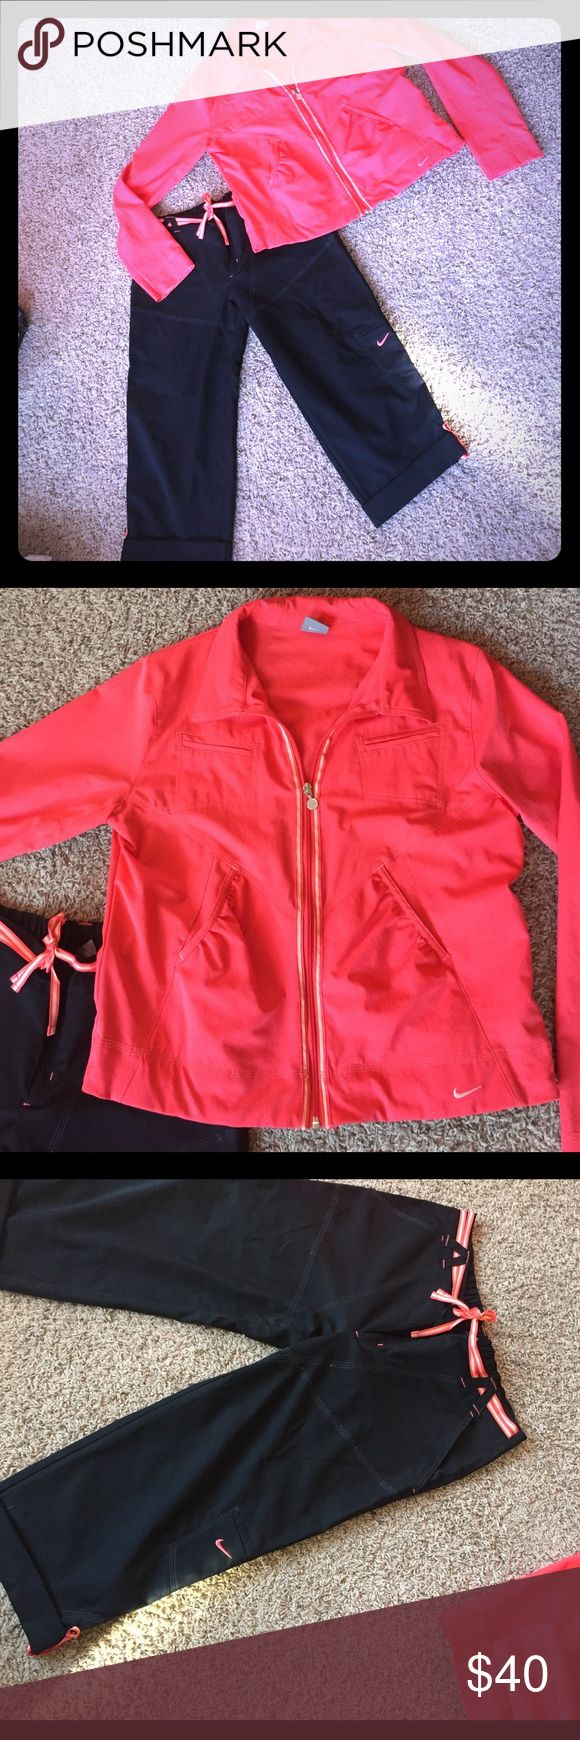 Super cute Nike Capri/Jacket set new without tags This is a super cute Nike Capri set. Beautiful coral jacket with matching details on the black Nike capris. Capris are Medium. Jacket is XL. ... I normally wear size 10 dress and this fits great. The jacket is not tight :) thanks for shopping ❗️ Nike Other